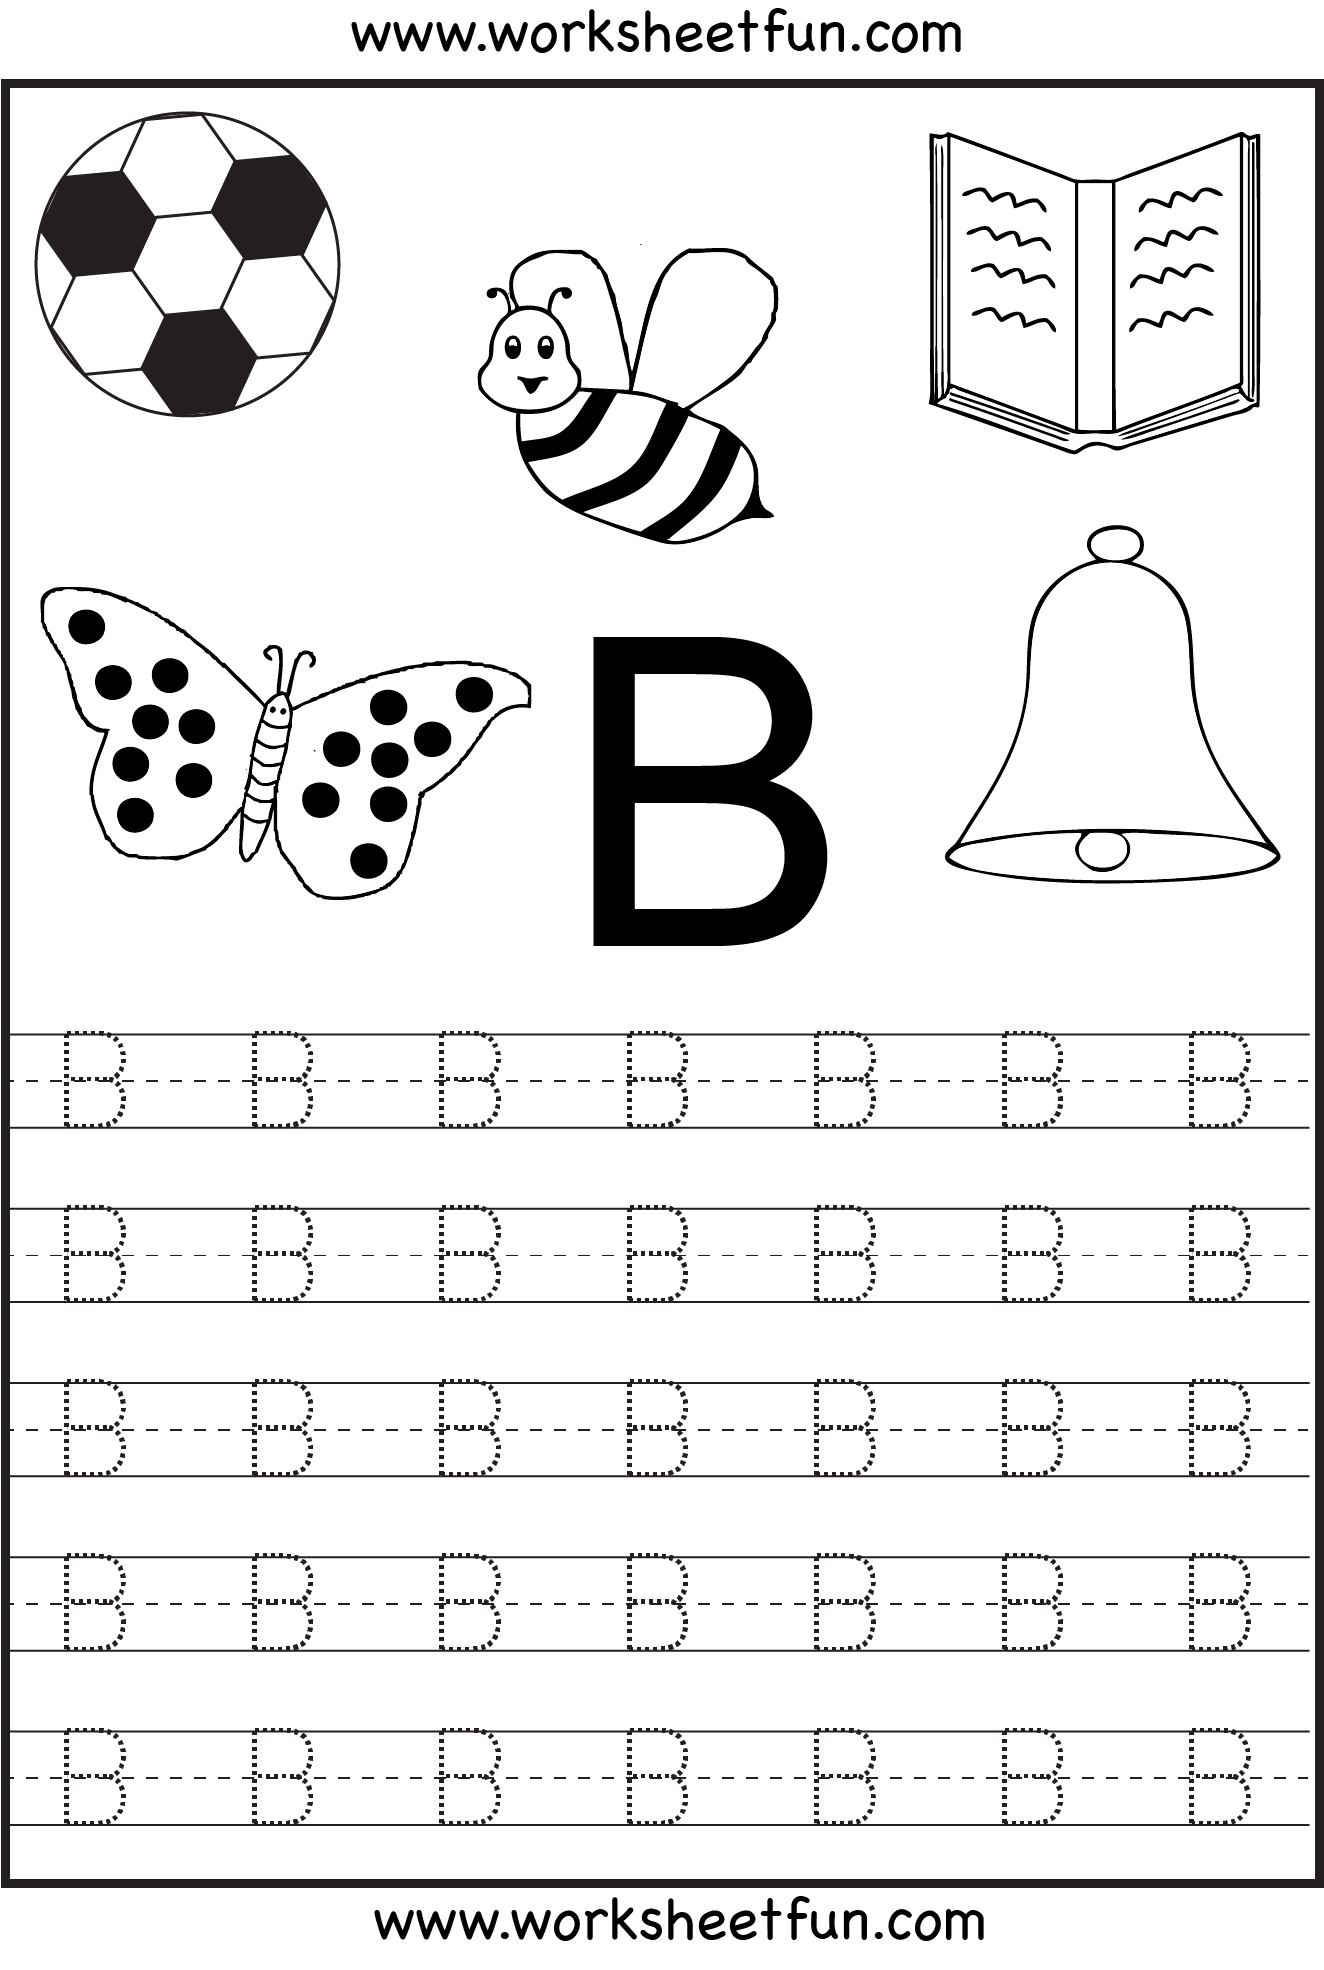 worksheet Letter B Worksheet free printable letter tracing worksheets for kindergarten 26 worksheets